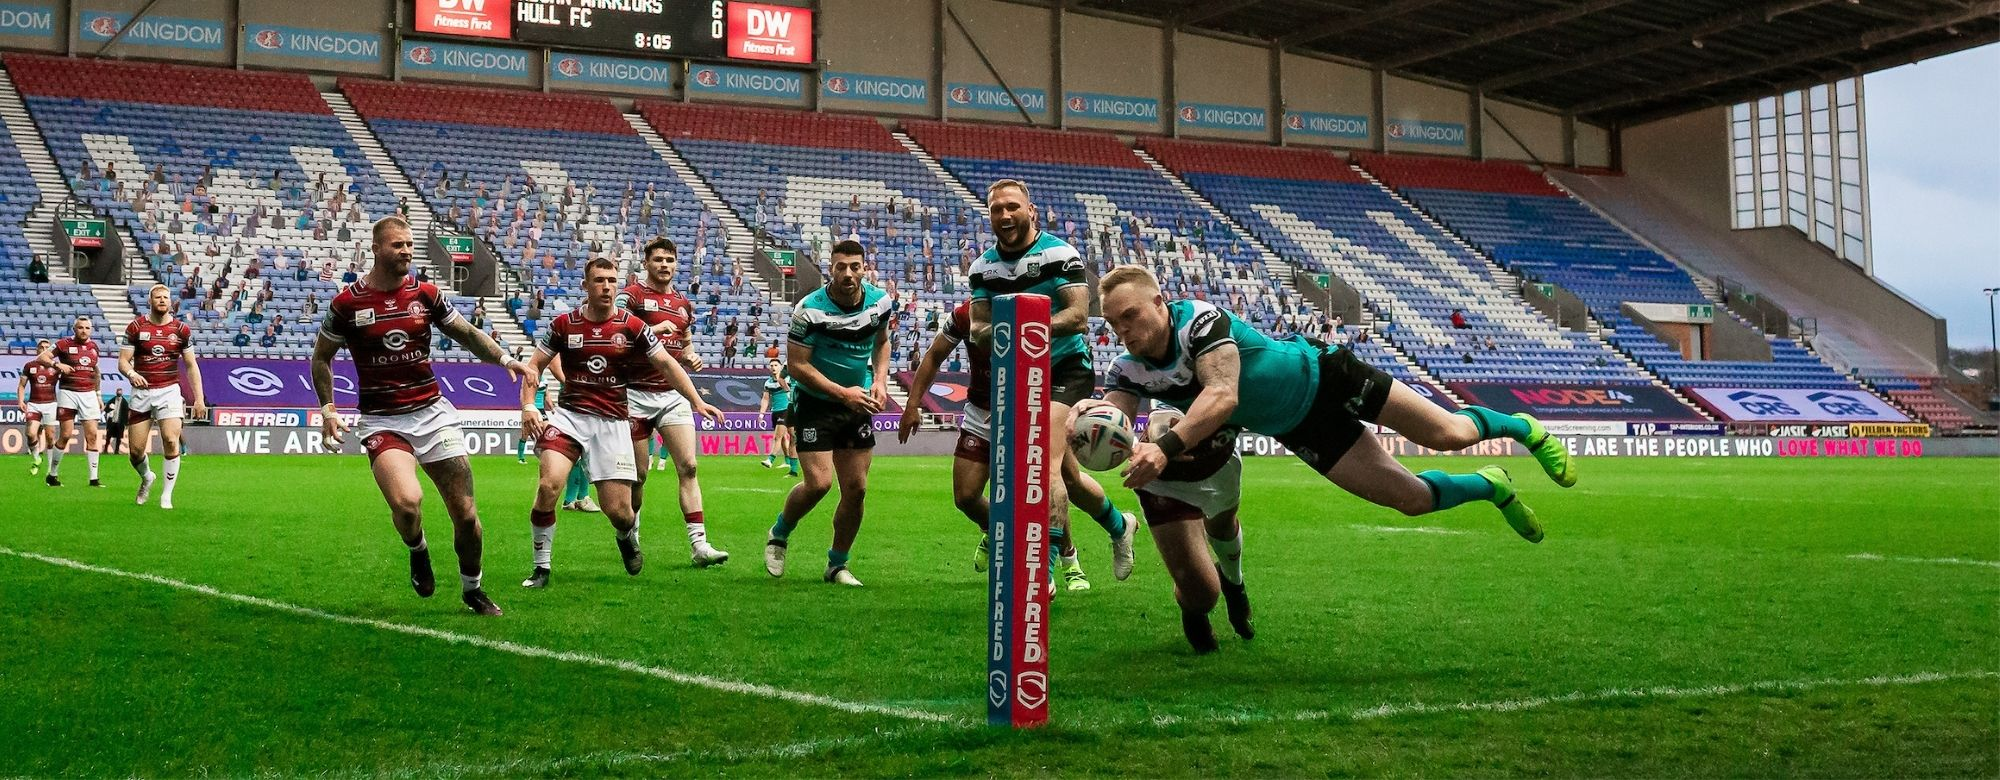 Match Report: Warriors 16-14 Hull